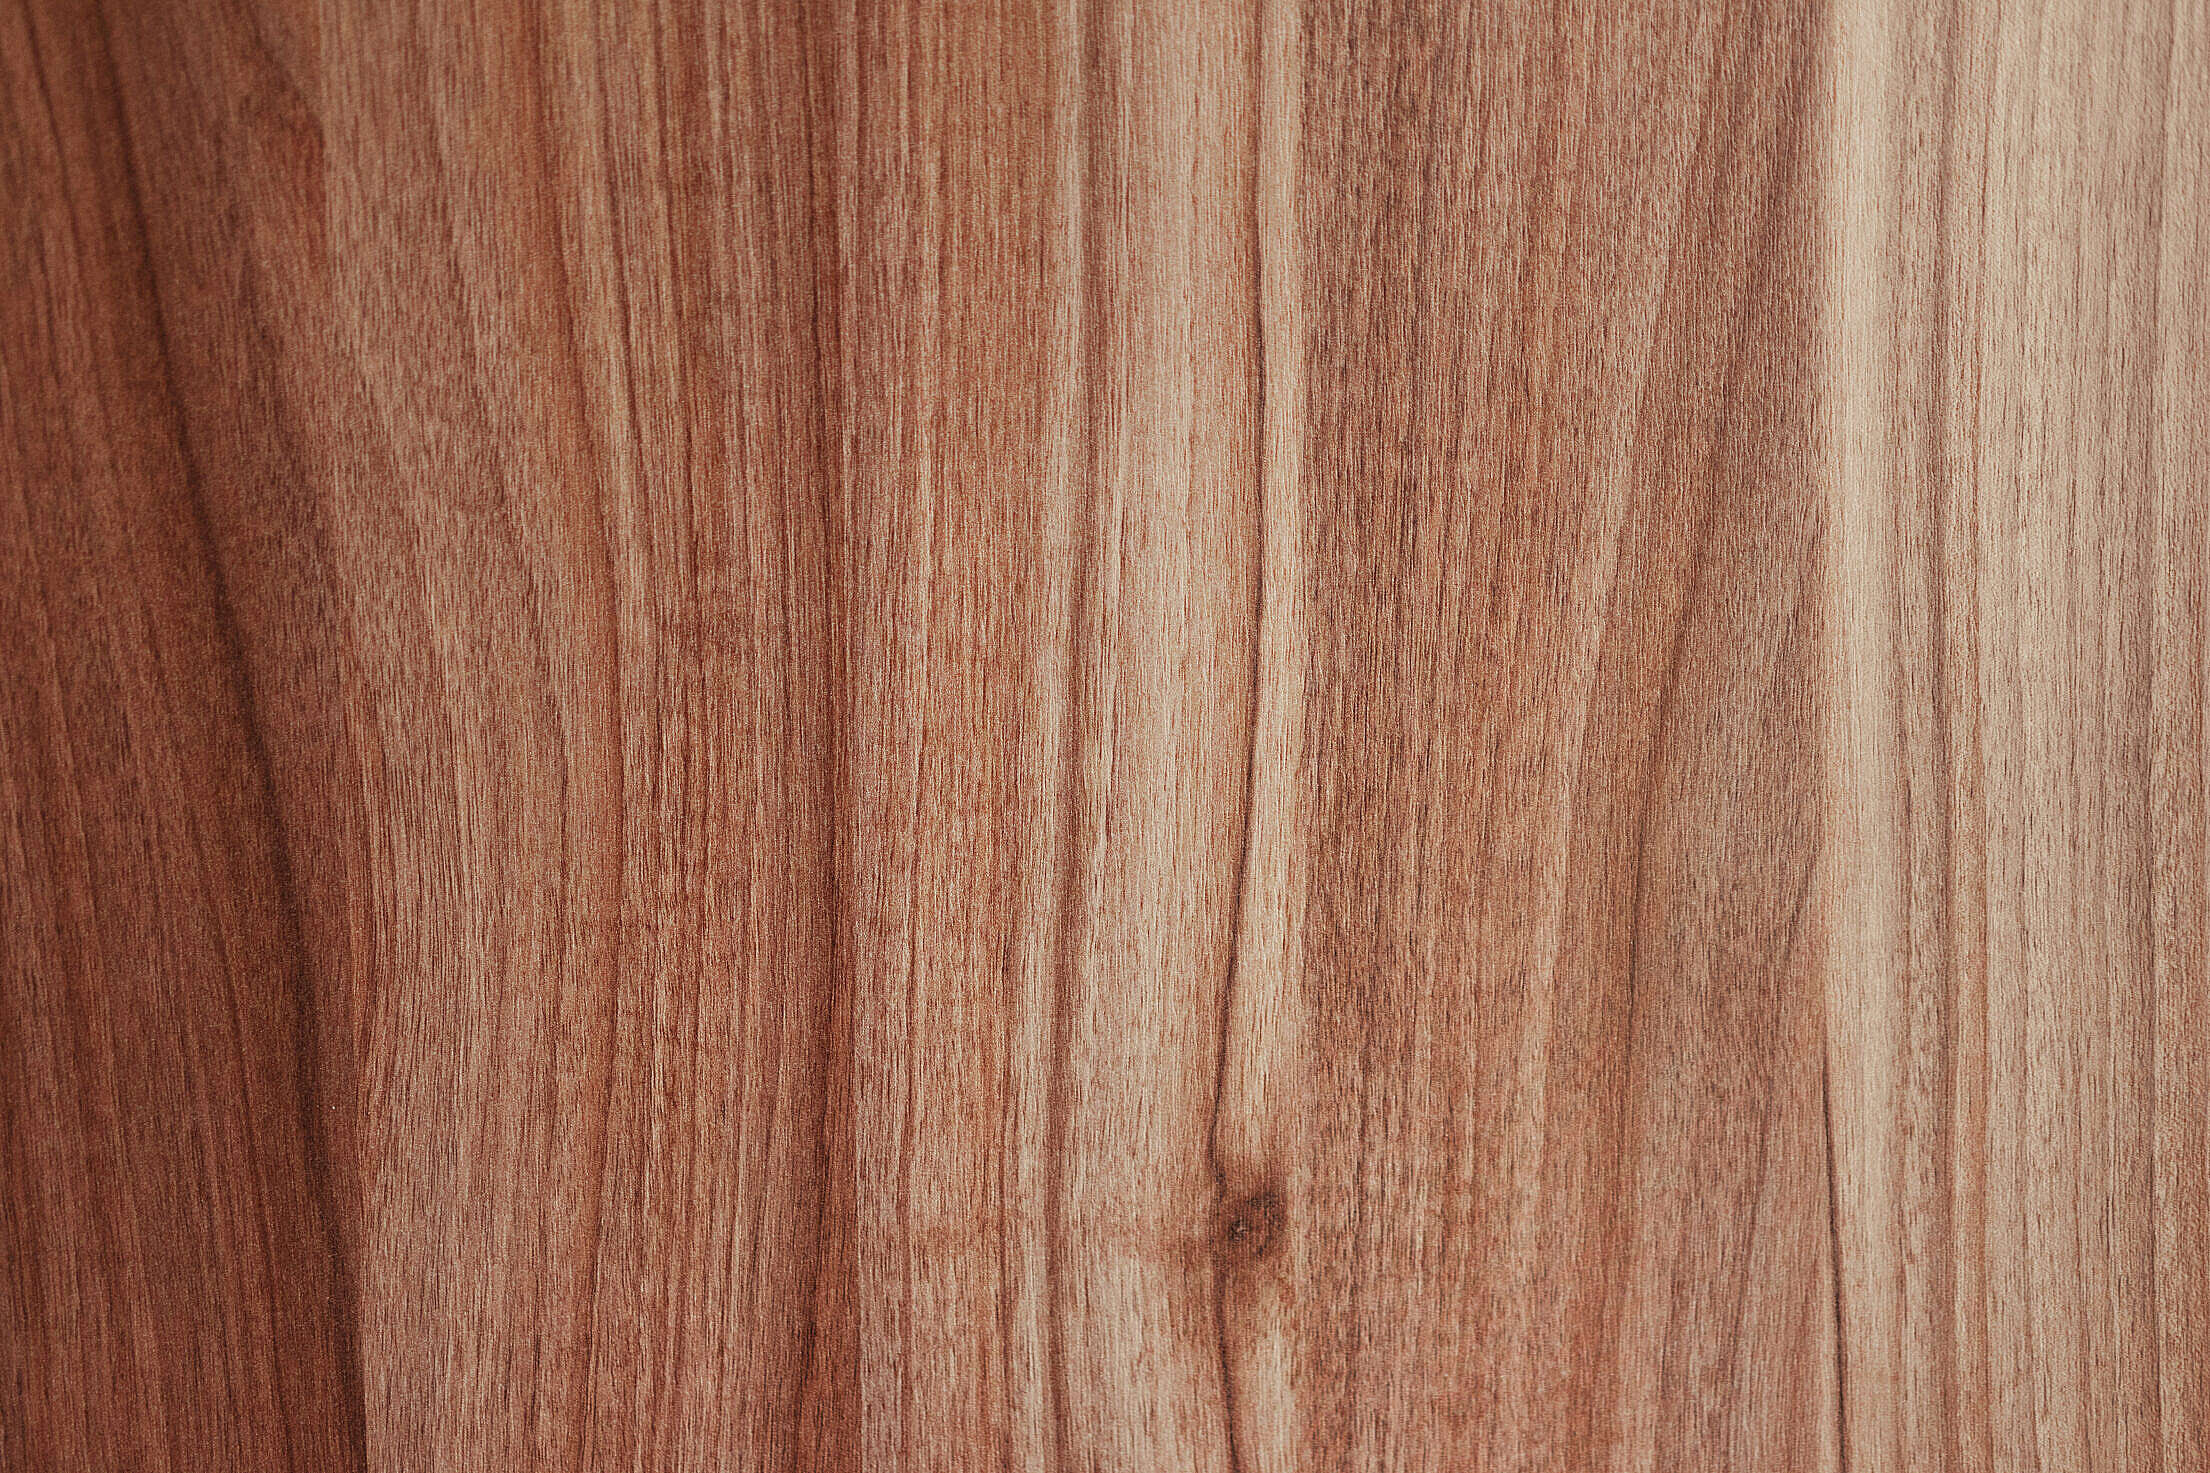 Realistic Wooden Home Decor Background Free Stock Photo